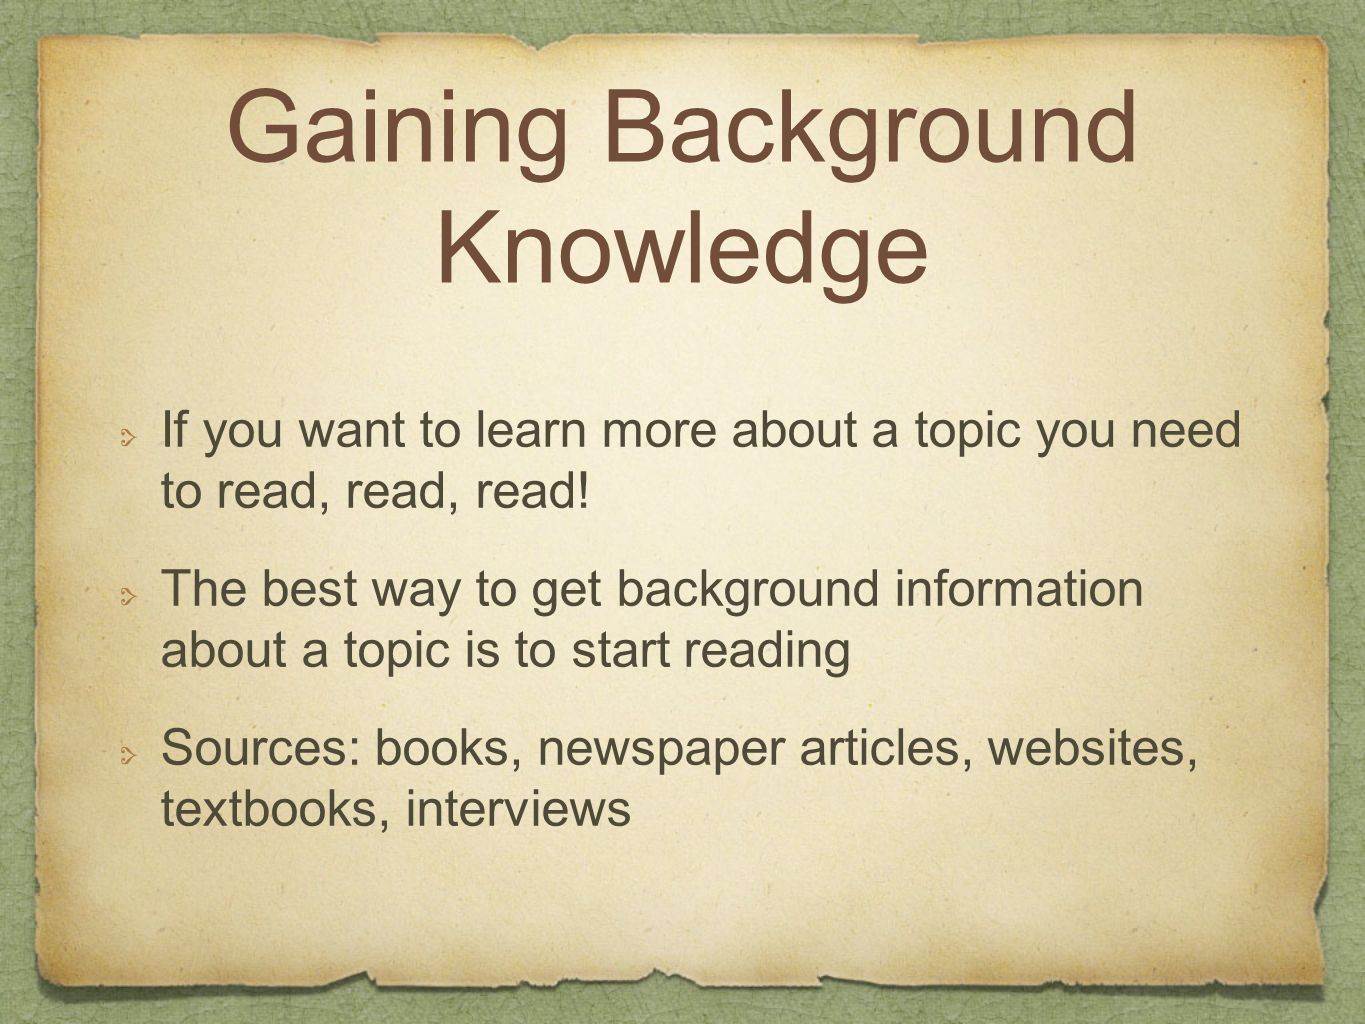 Gaining Background Knowledge